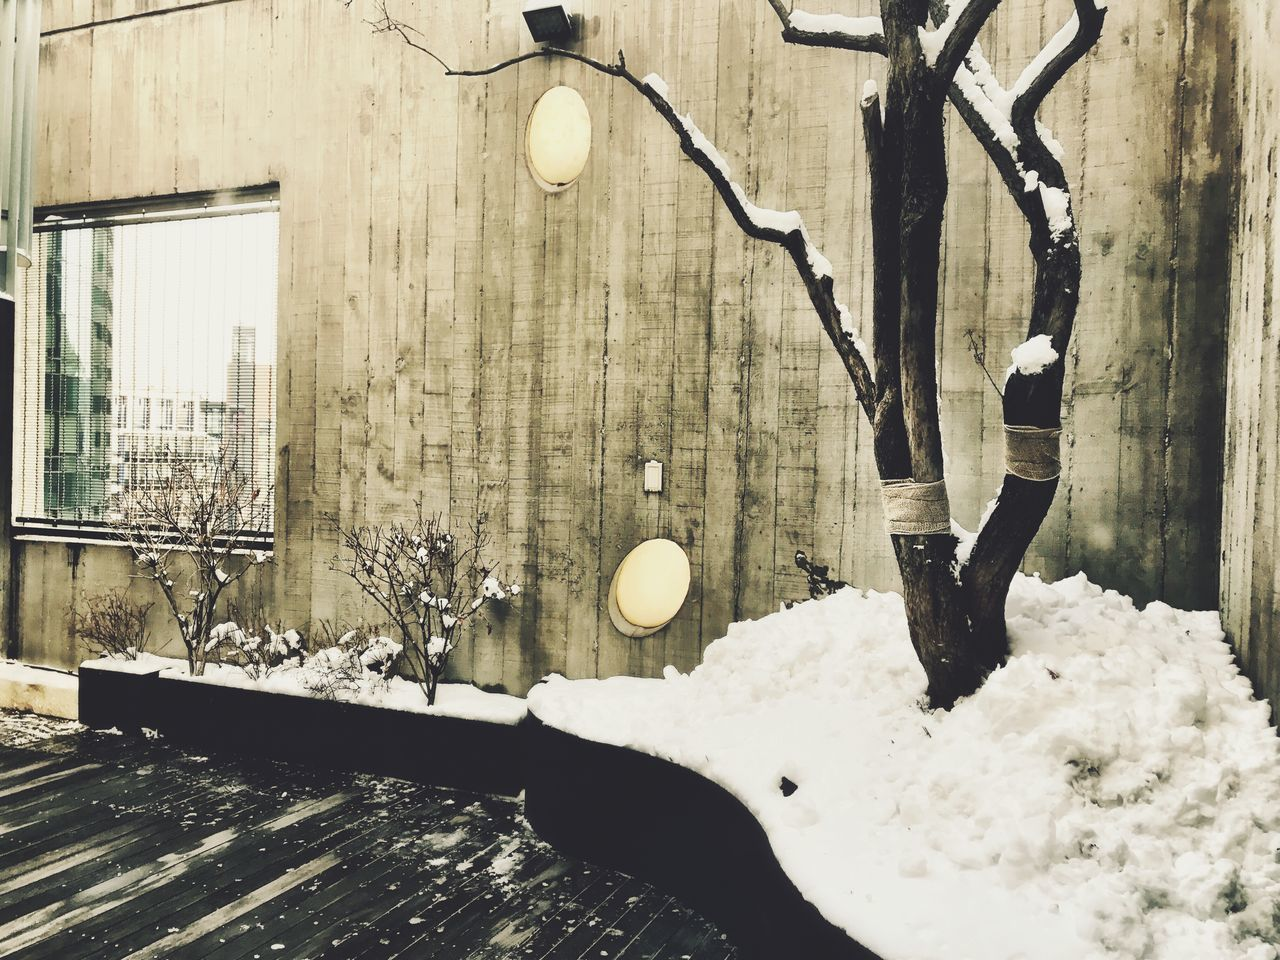 Winter Snow Nature Cold Temperature No People Tree Architecture Built Structure Outdoors Day Beauty In Nature City Garden Tree Snow ❄ Cheongdamdong Shotoniphone7 IPhoneography Urbanphotography Rooftop